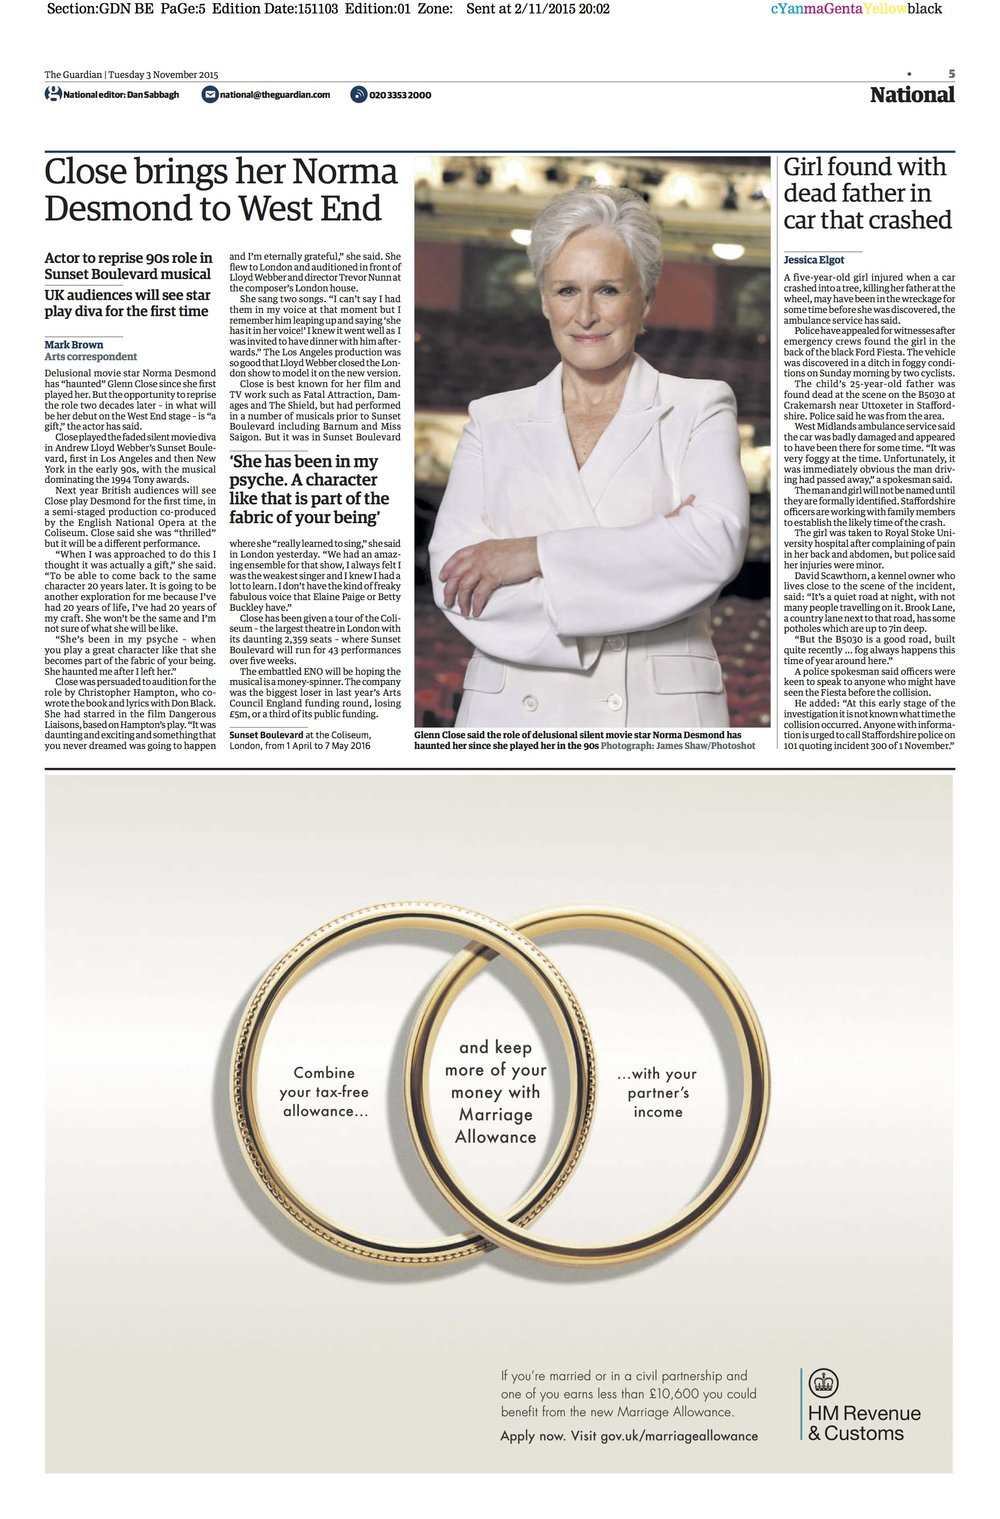 Glenn Close The Guardian.jpg